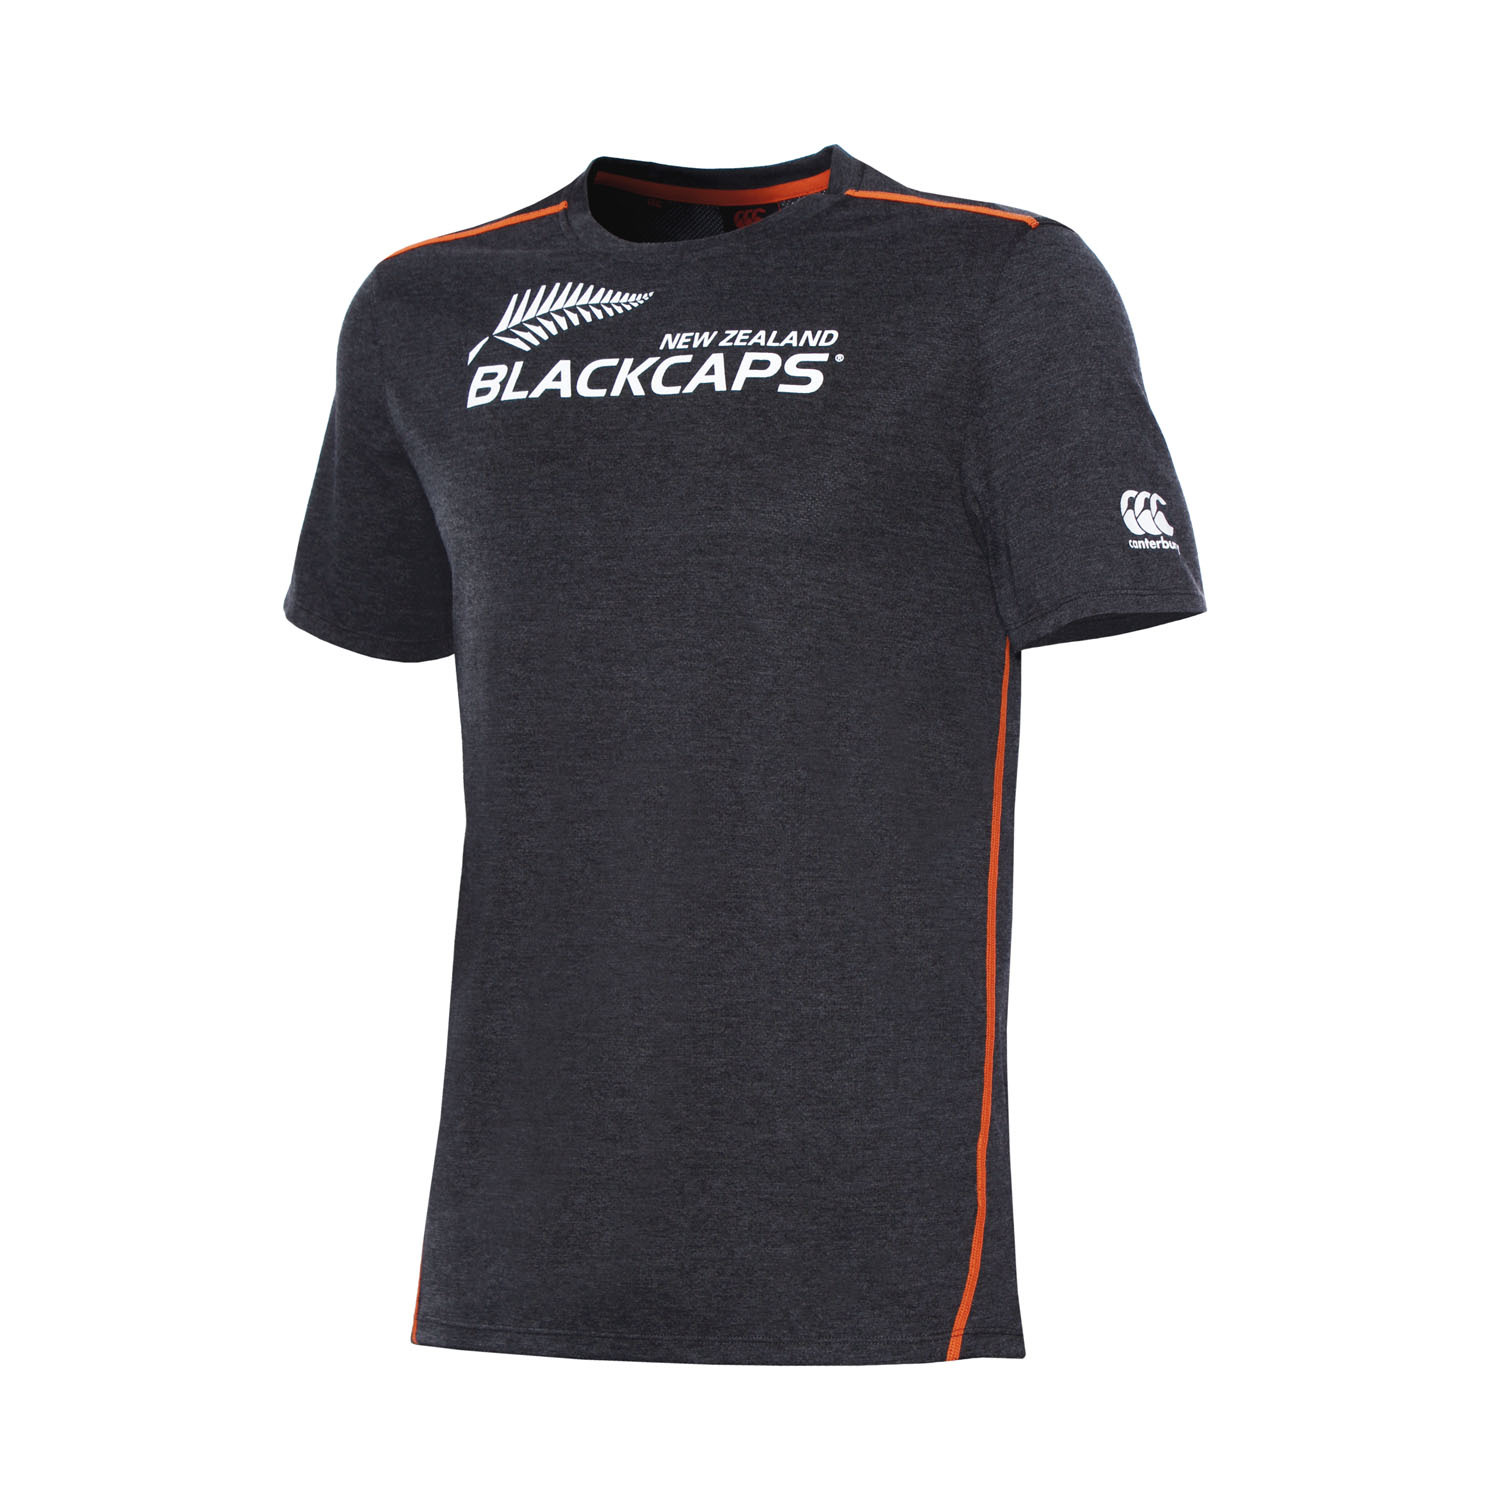 BLACKCAPS Supporters Tee (3XL) image